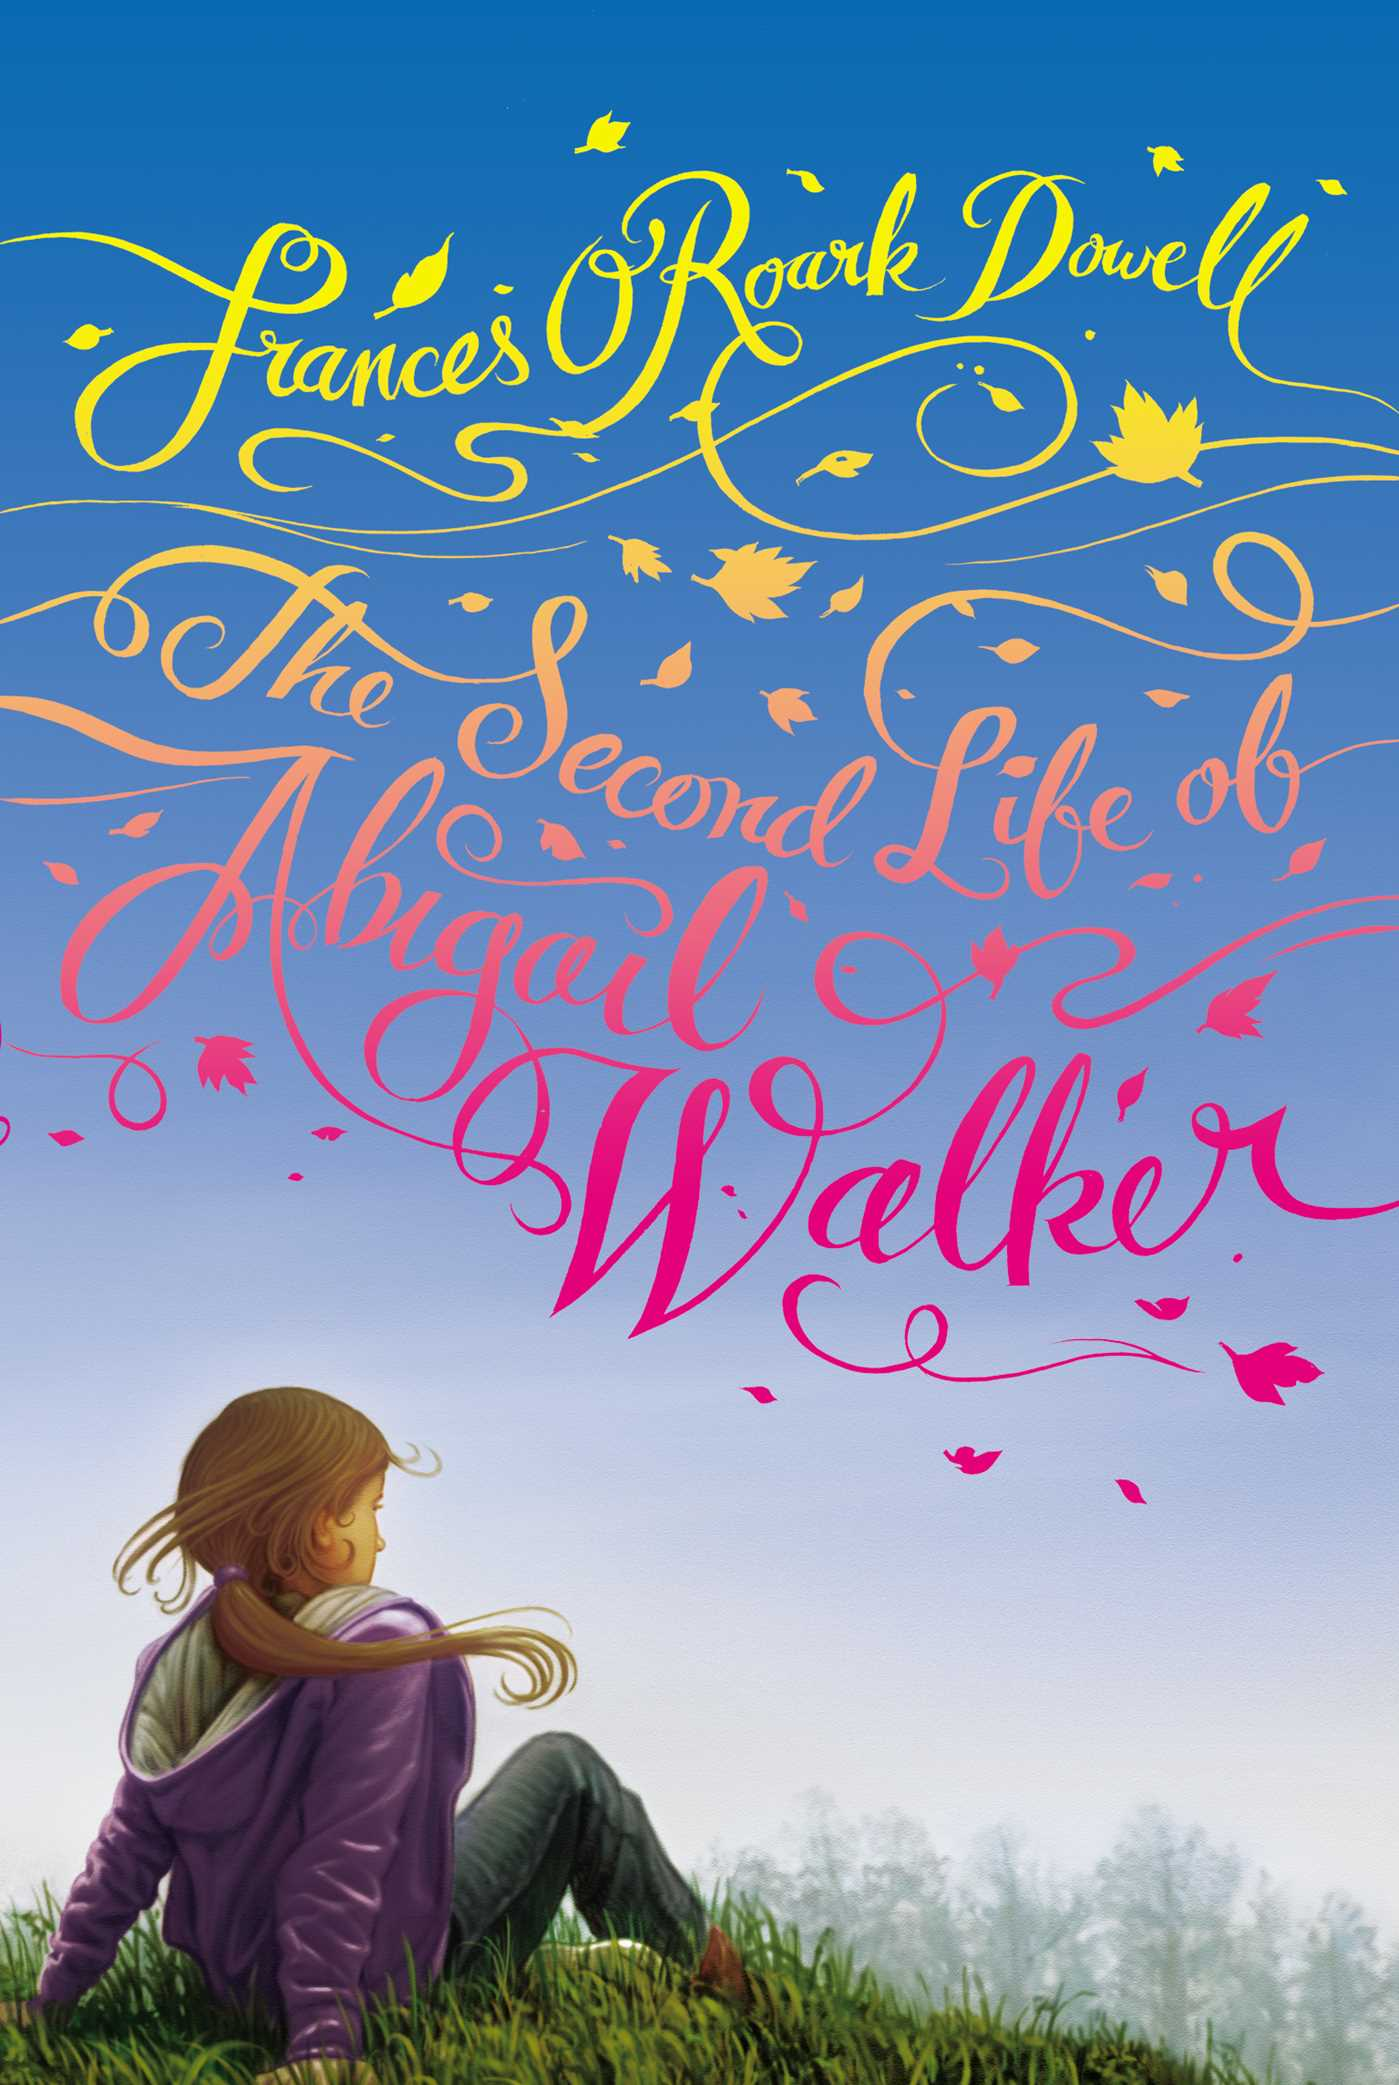 The second life of abigail walker 9781442405950 hr